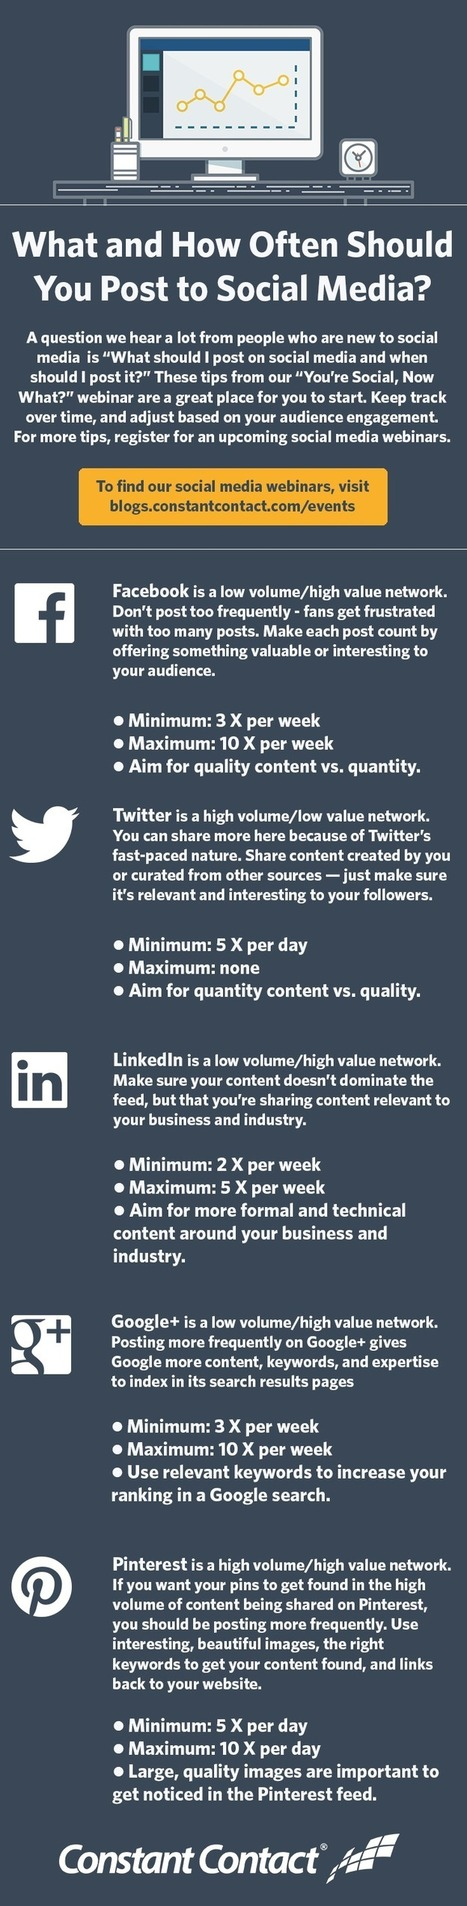 Social Media Posting Frequency? Helpful infographic via Constant Contact | Collaborative Revolution | Scoop.it